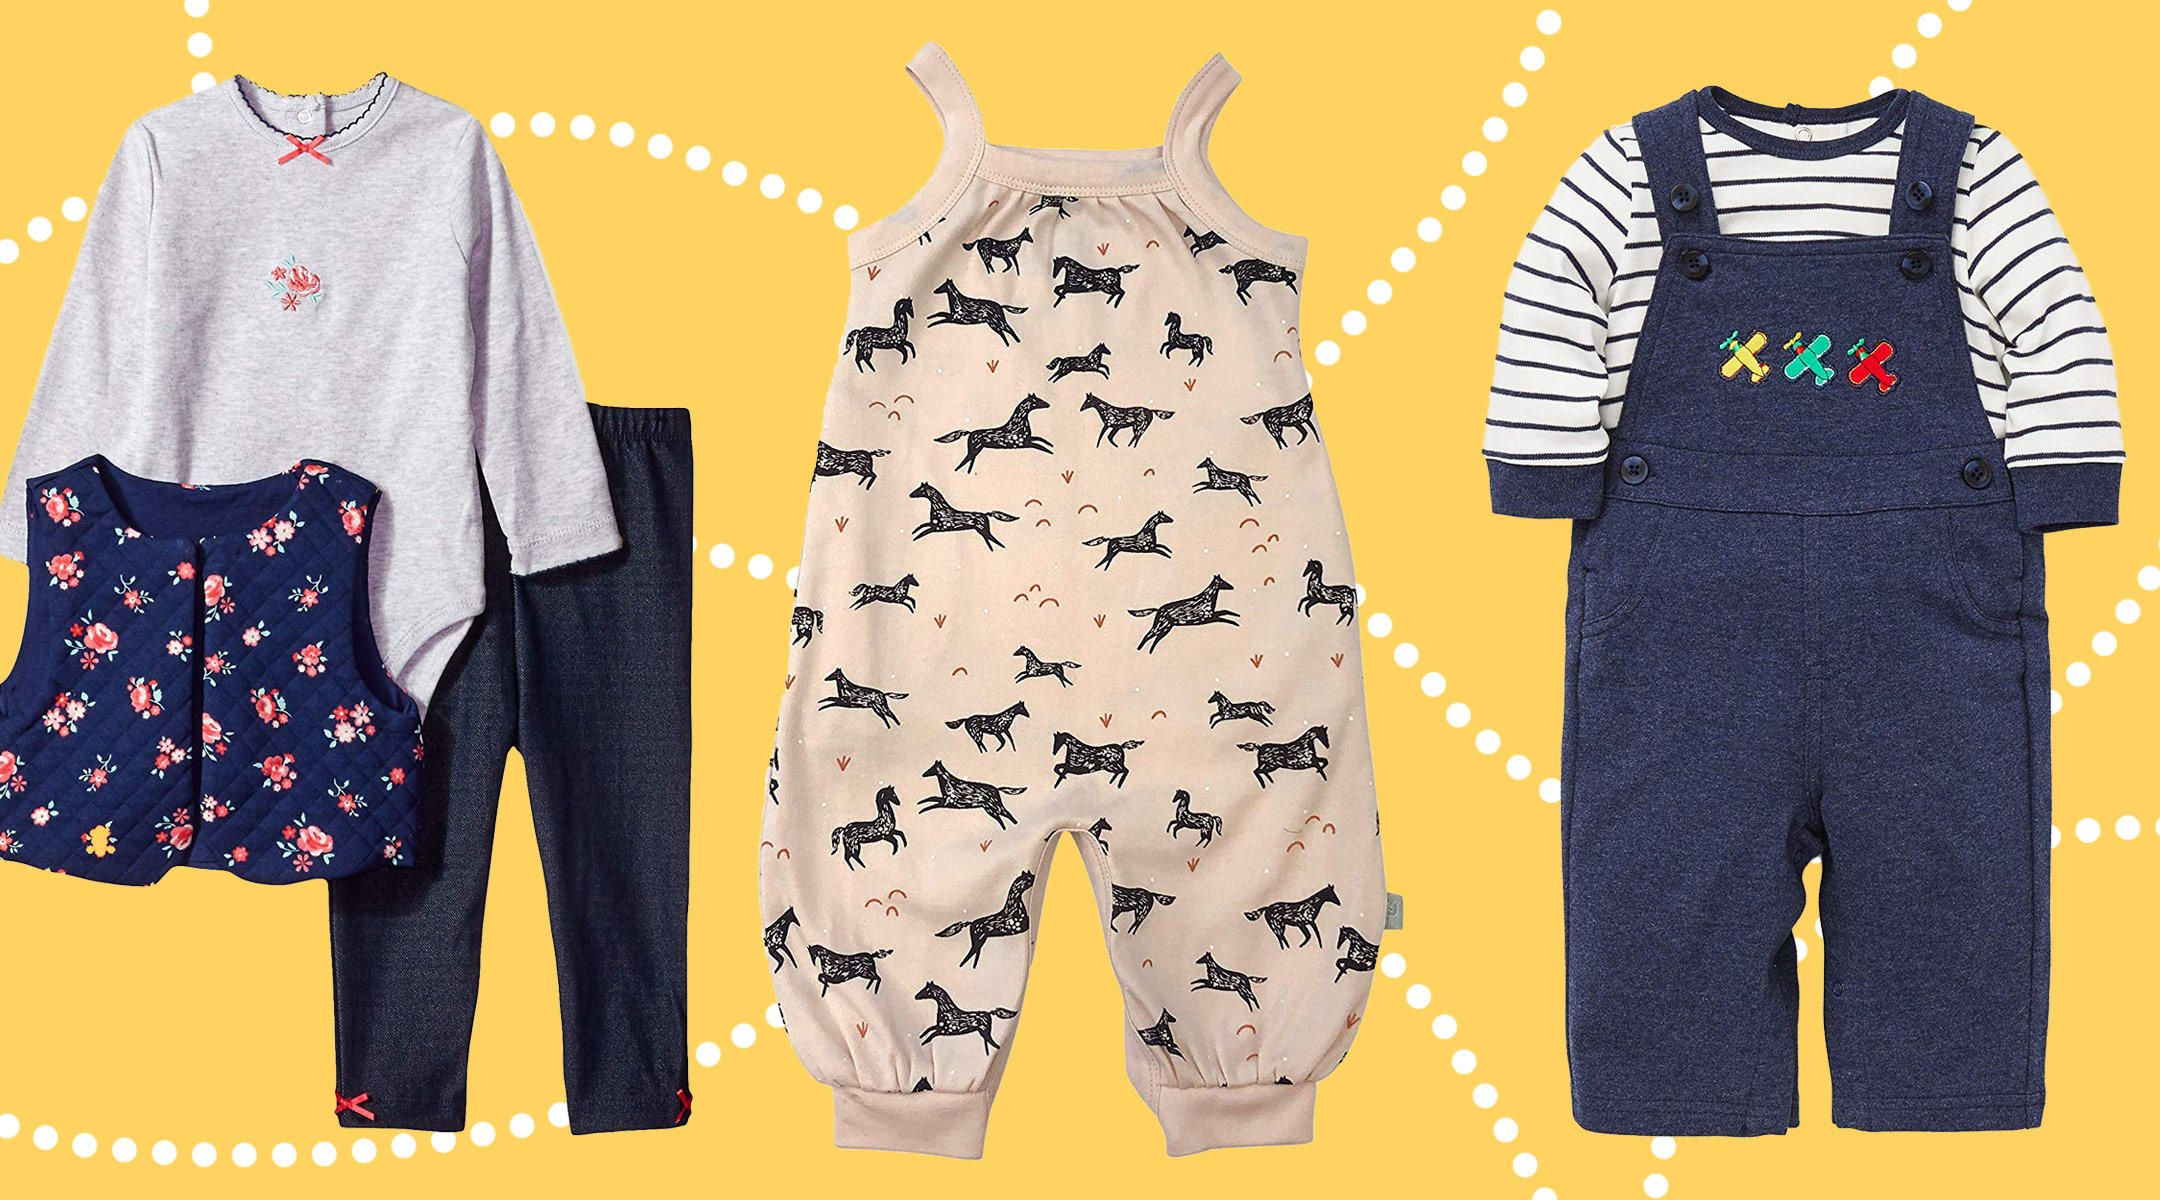 Amazon Baby Clothes: 5 Picks from the Best Brands  Amazon baby